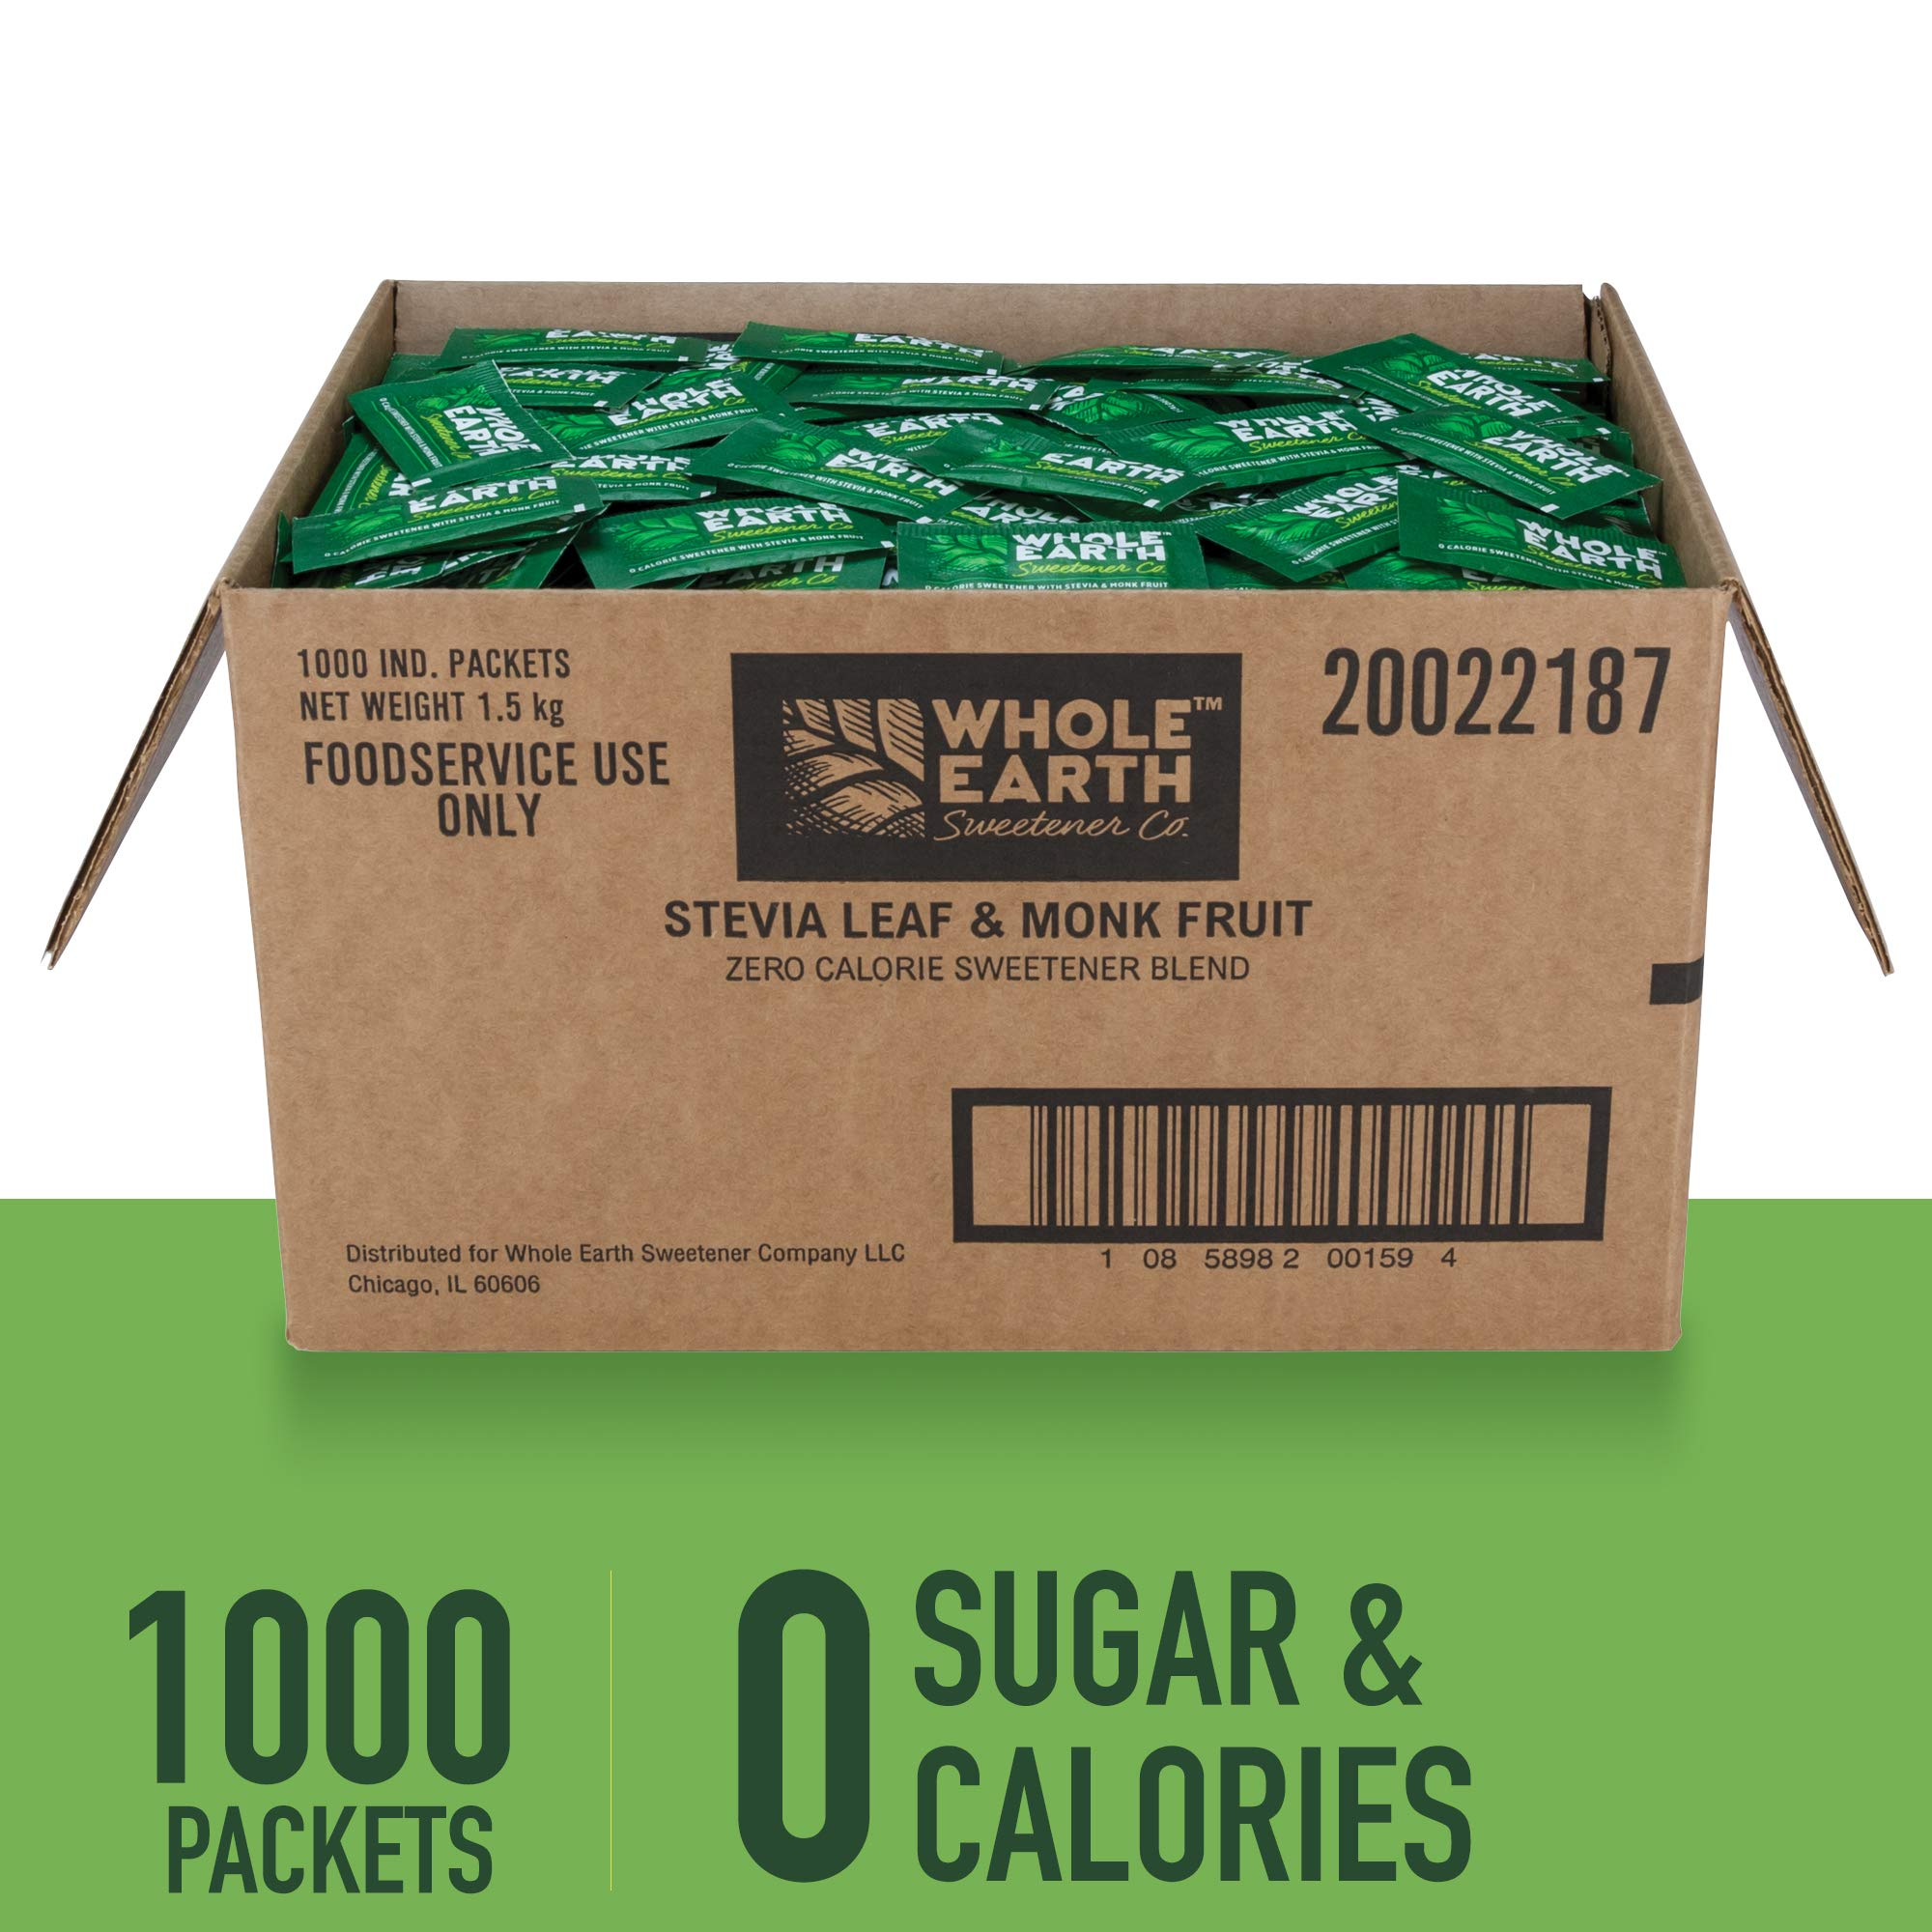 WHOLE EARTH SWEETENER Stevia and Monk Fruit Sweetener, Erythritol Sweetener, Sugar Substitute, Zero Calorie Sweetener, 1,000 Stevia Packets by Whole Earth Sweetener Company (Image #1)